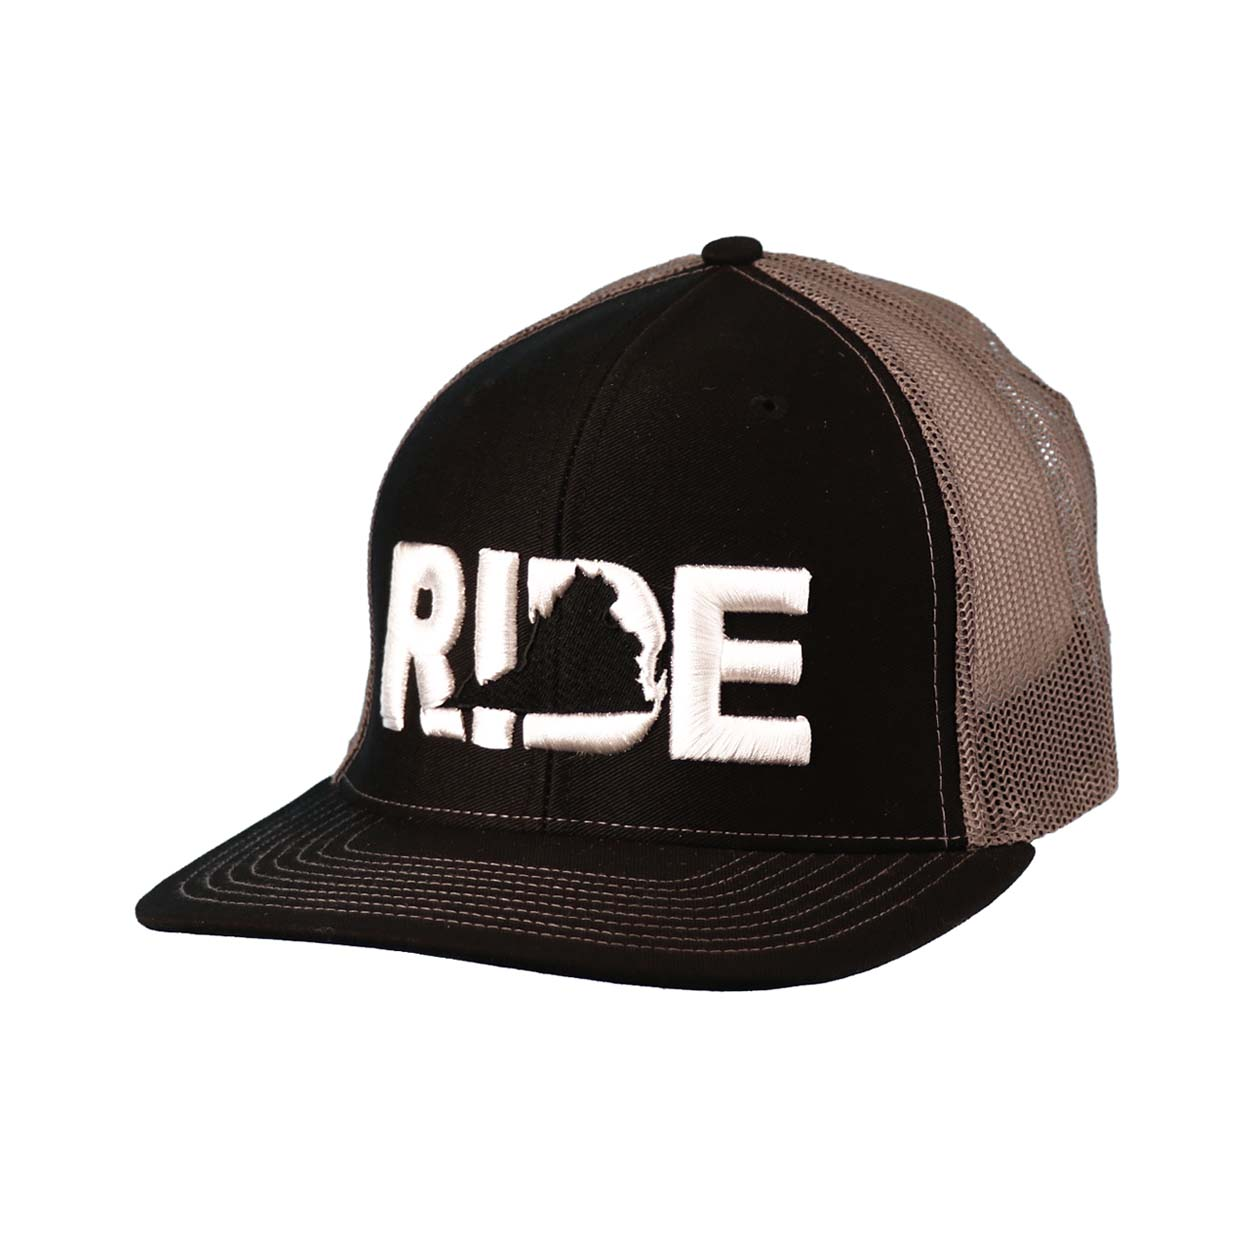 Ride Virginia Classic Embroidered Snapback Trucker Hat Black/White